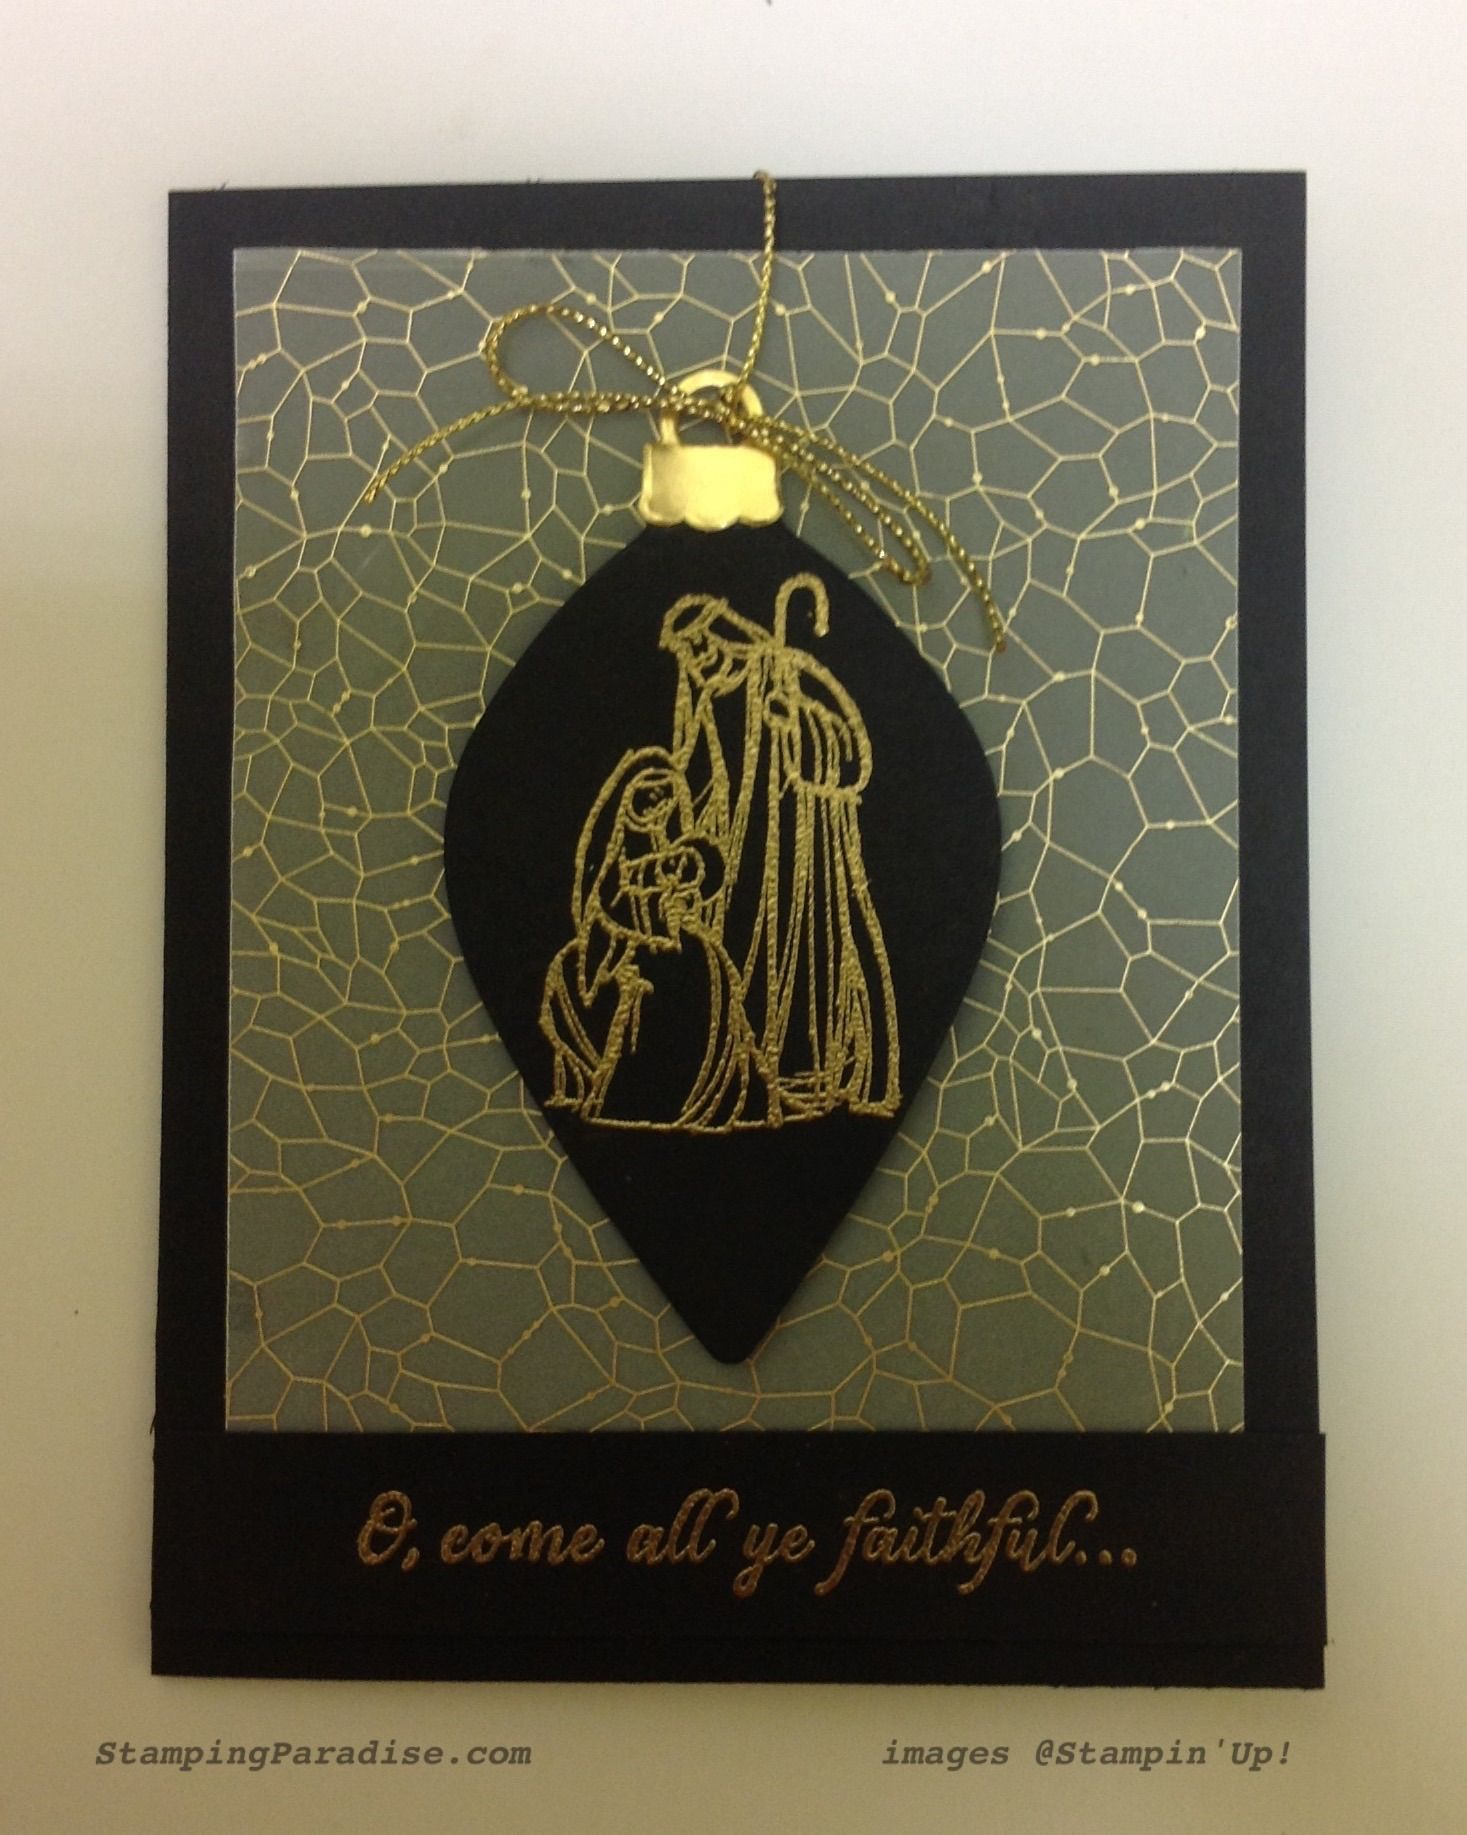 stampin up All Ye faithful cards pinterest - Google Search